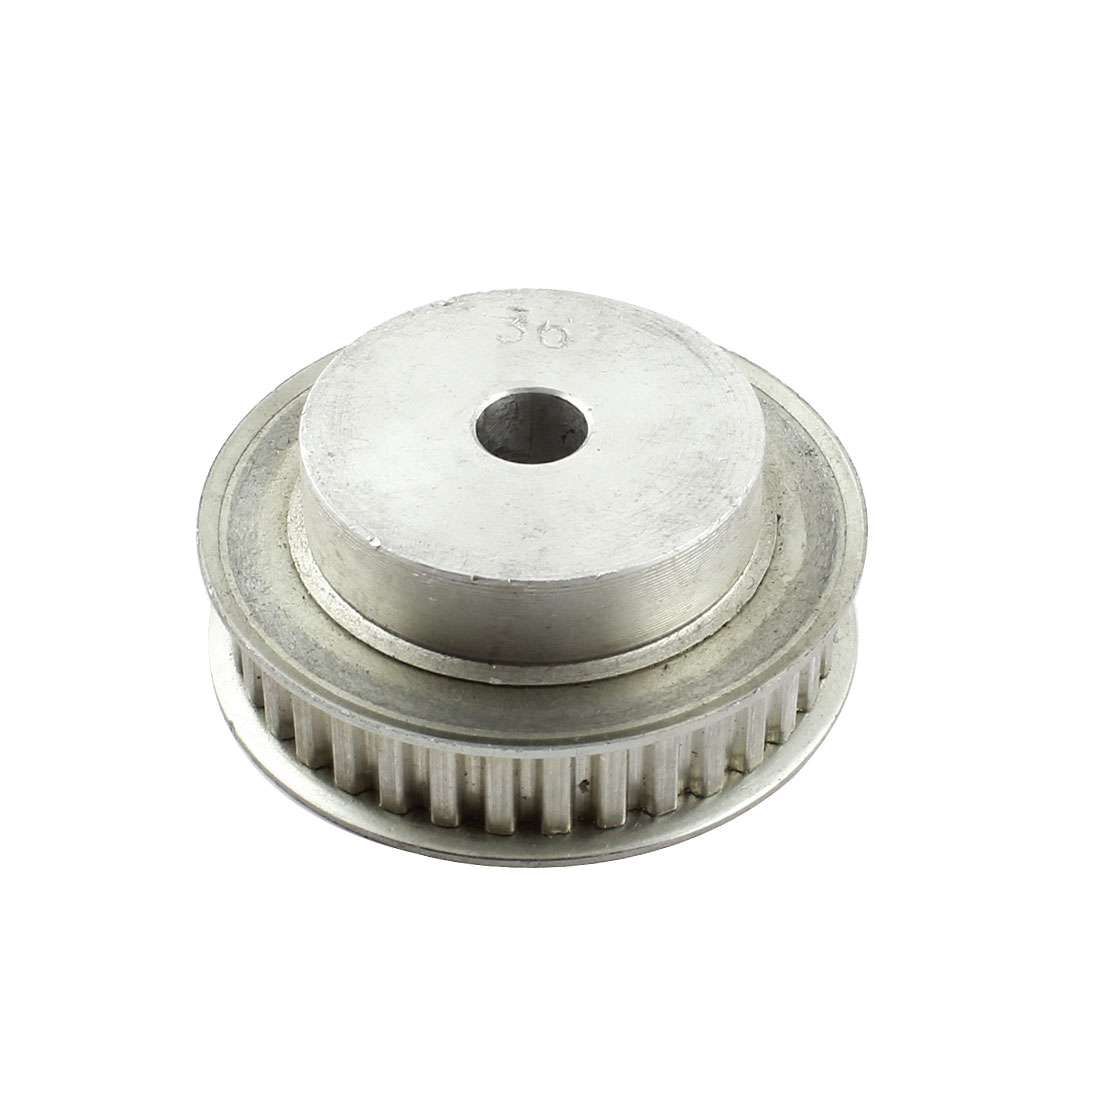 Aluminum Alloy XL 36 Teeth 10mm Bore Dia Double Flanged Motor Drive Synchronous Timing Pulley